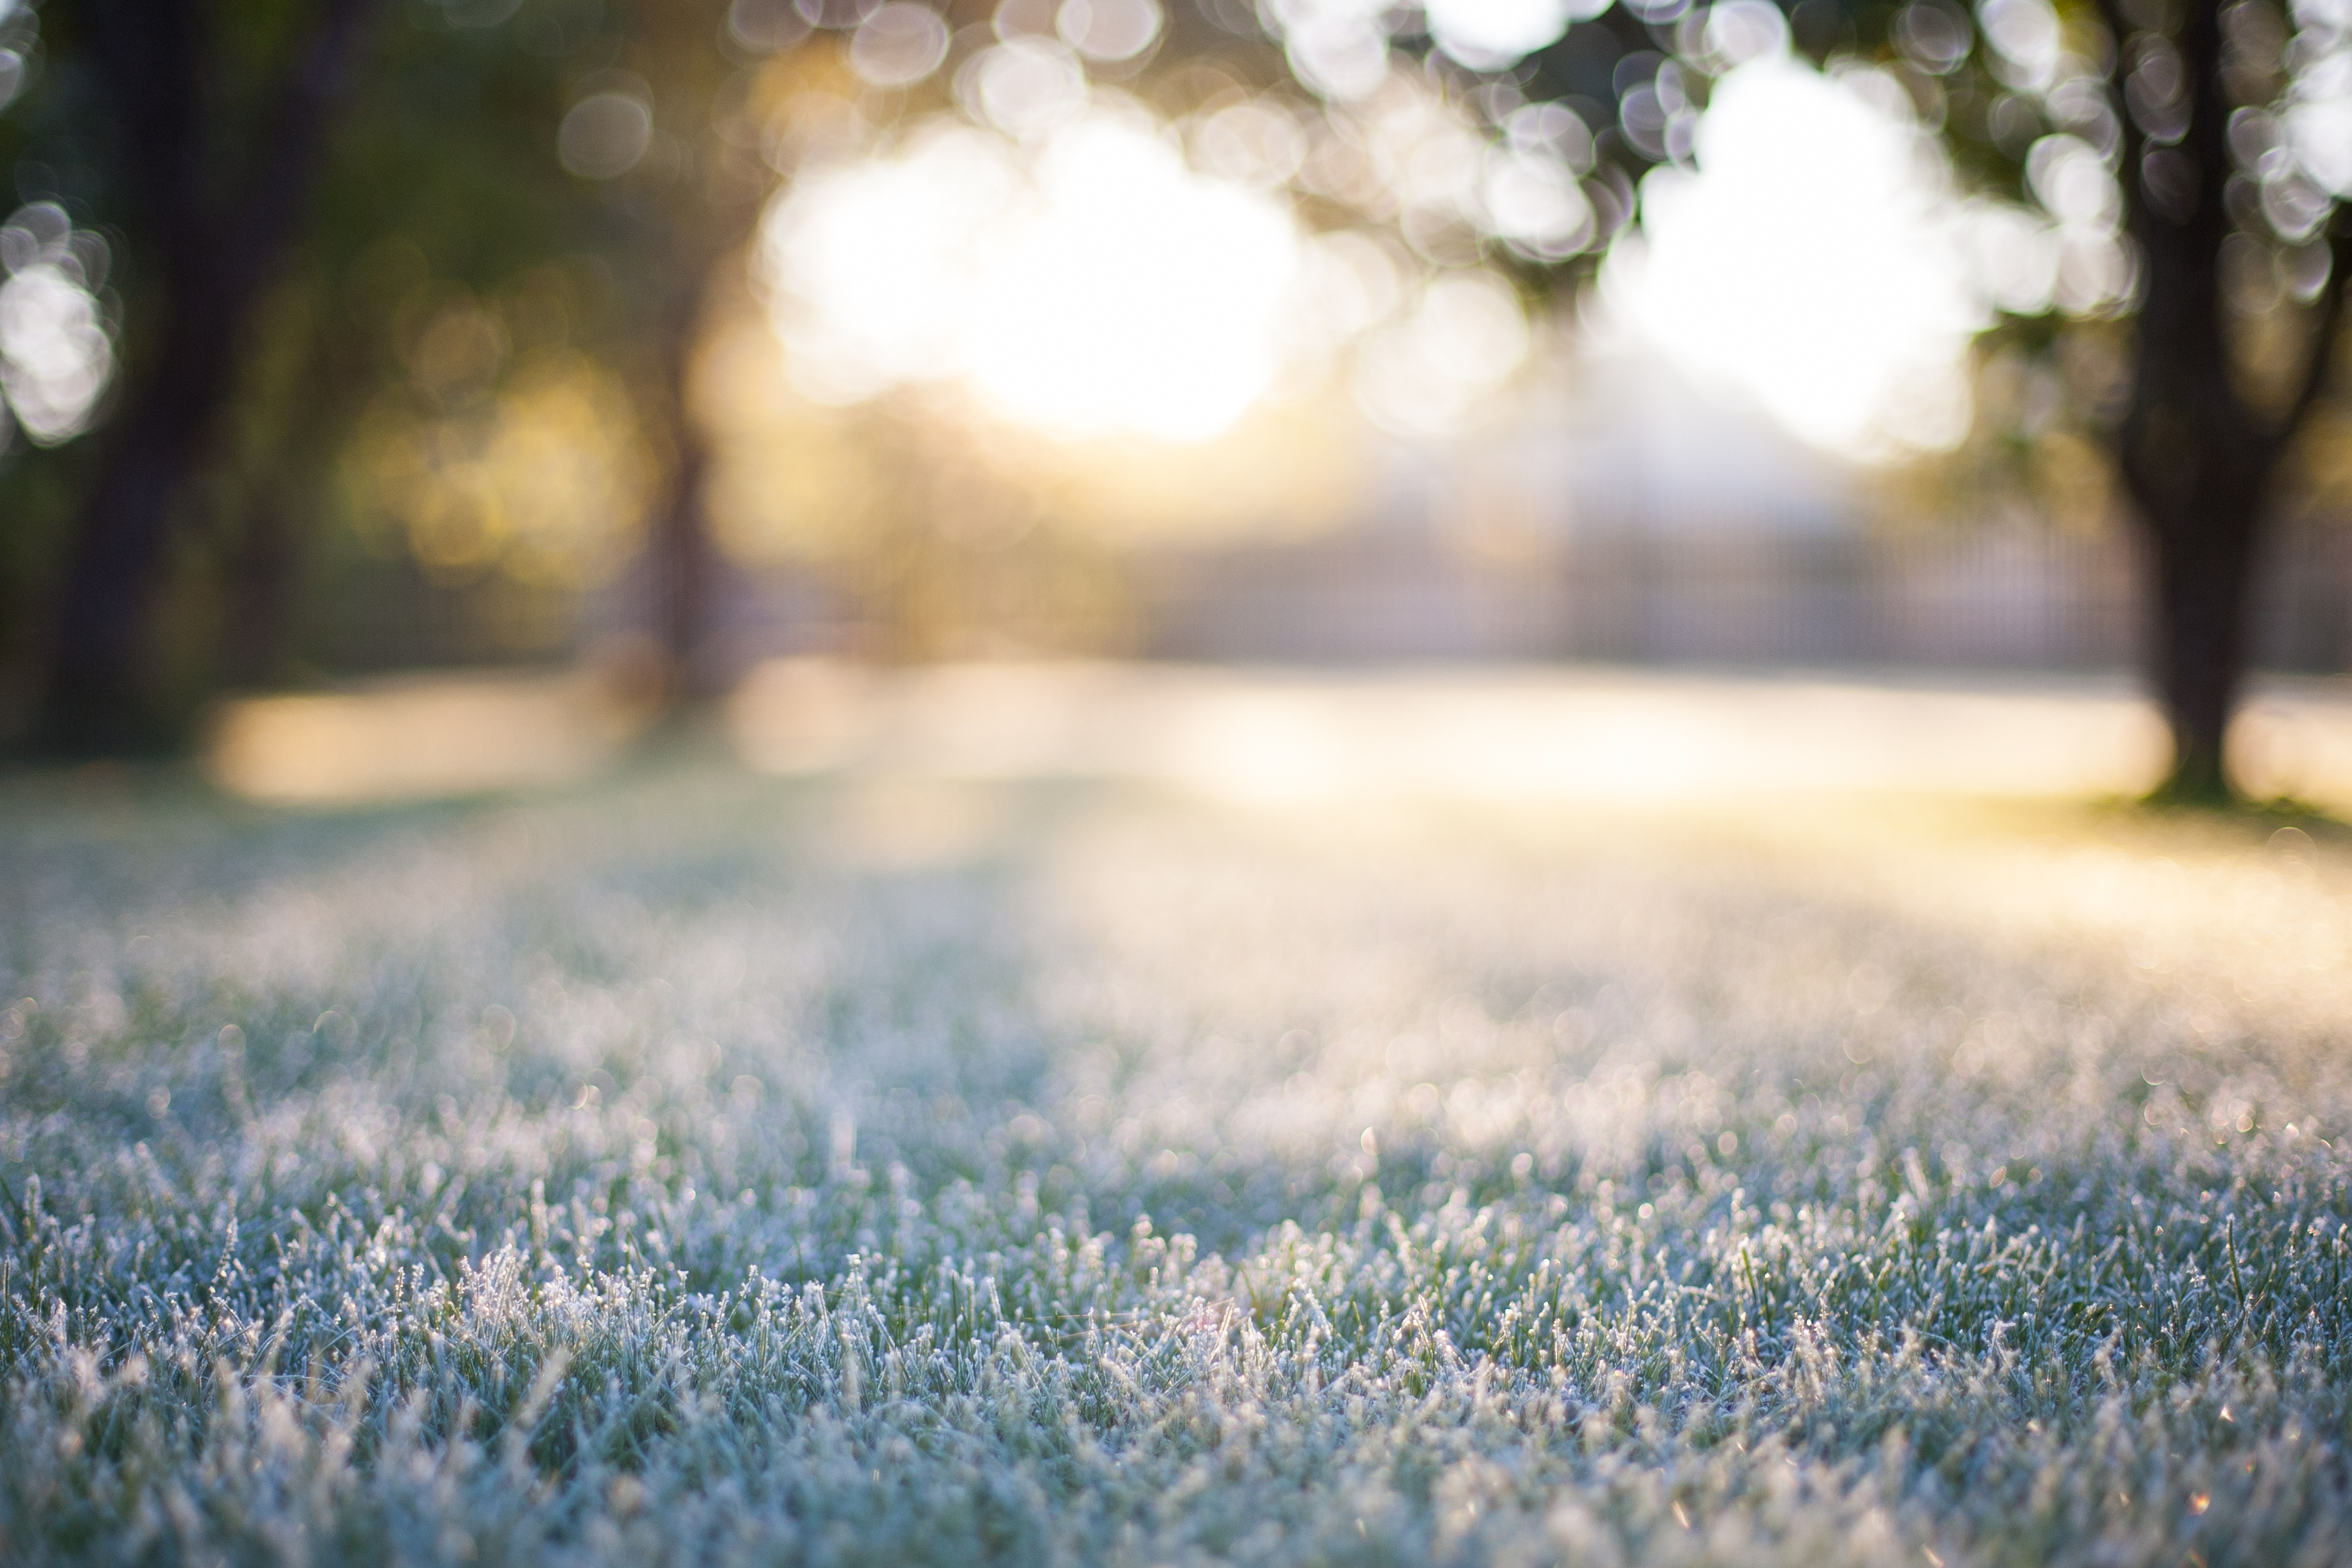 All turfgrass species are prone to winter desiccation.